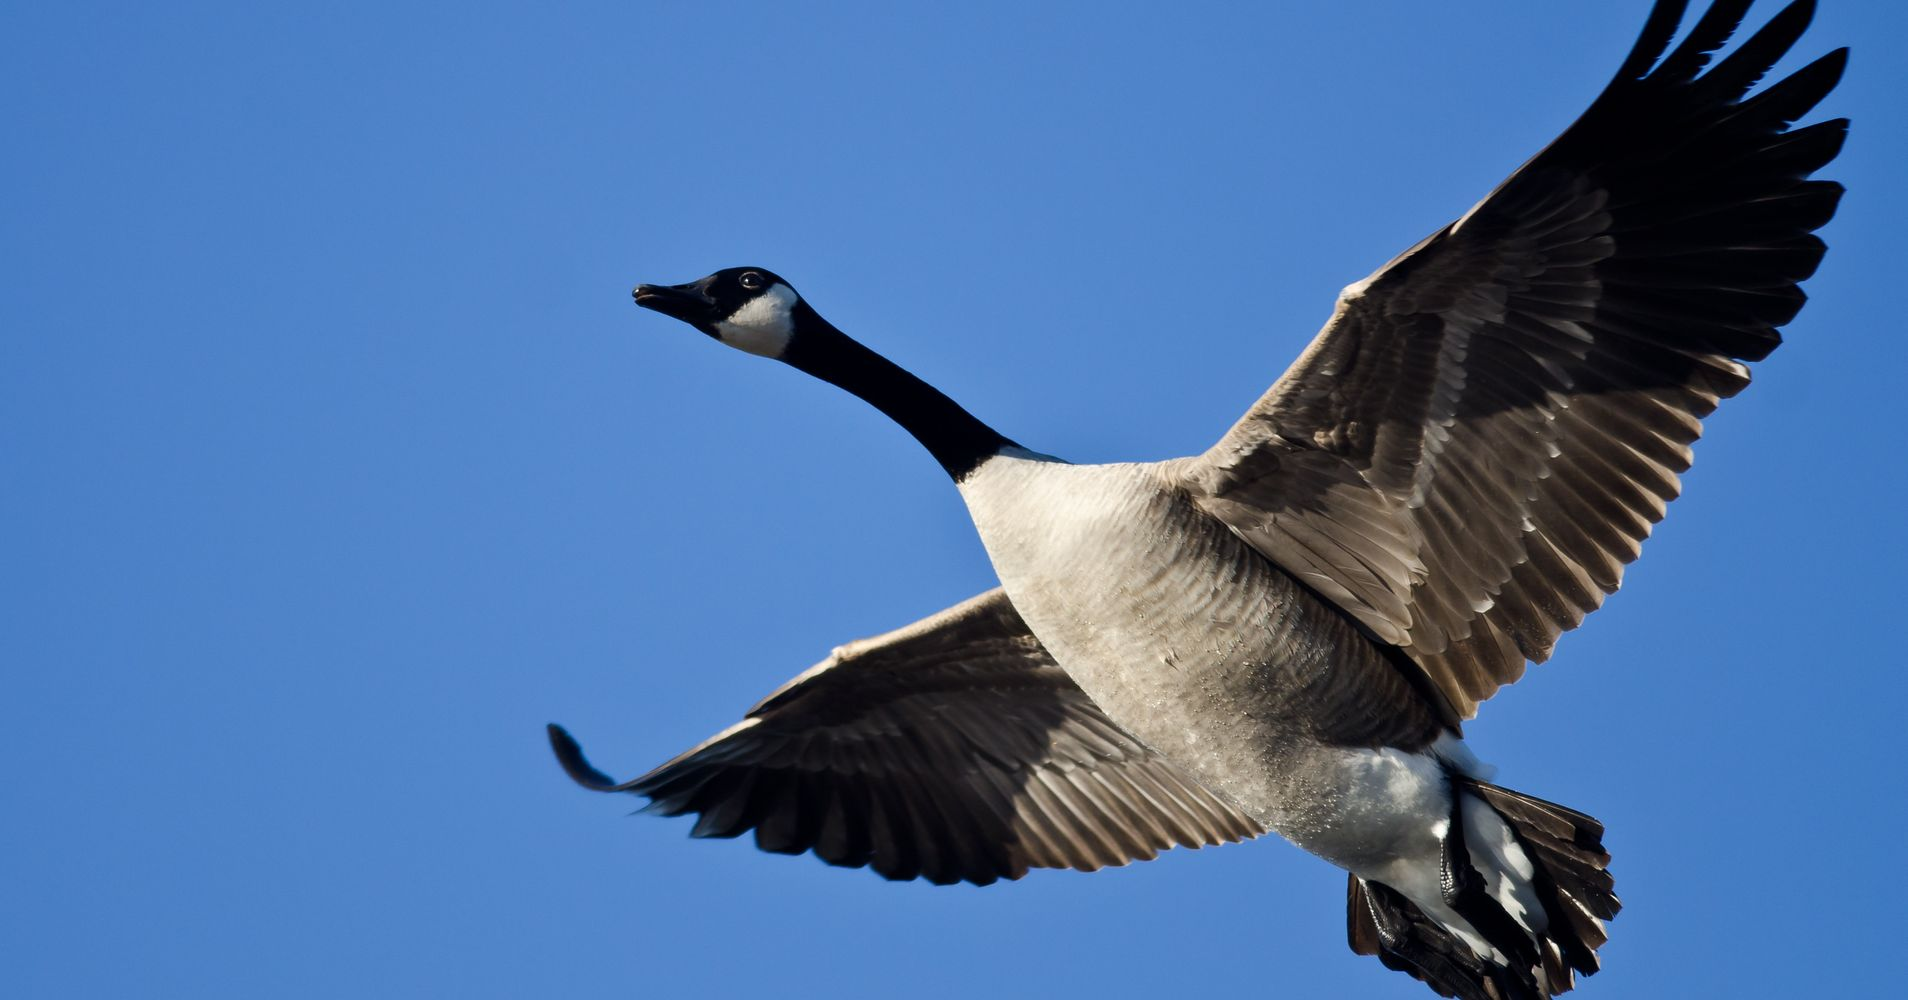 goose hunter knocked unconscious by dead bird falling from sky